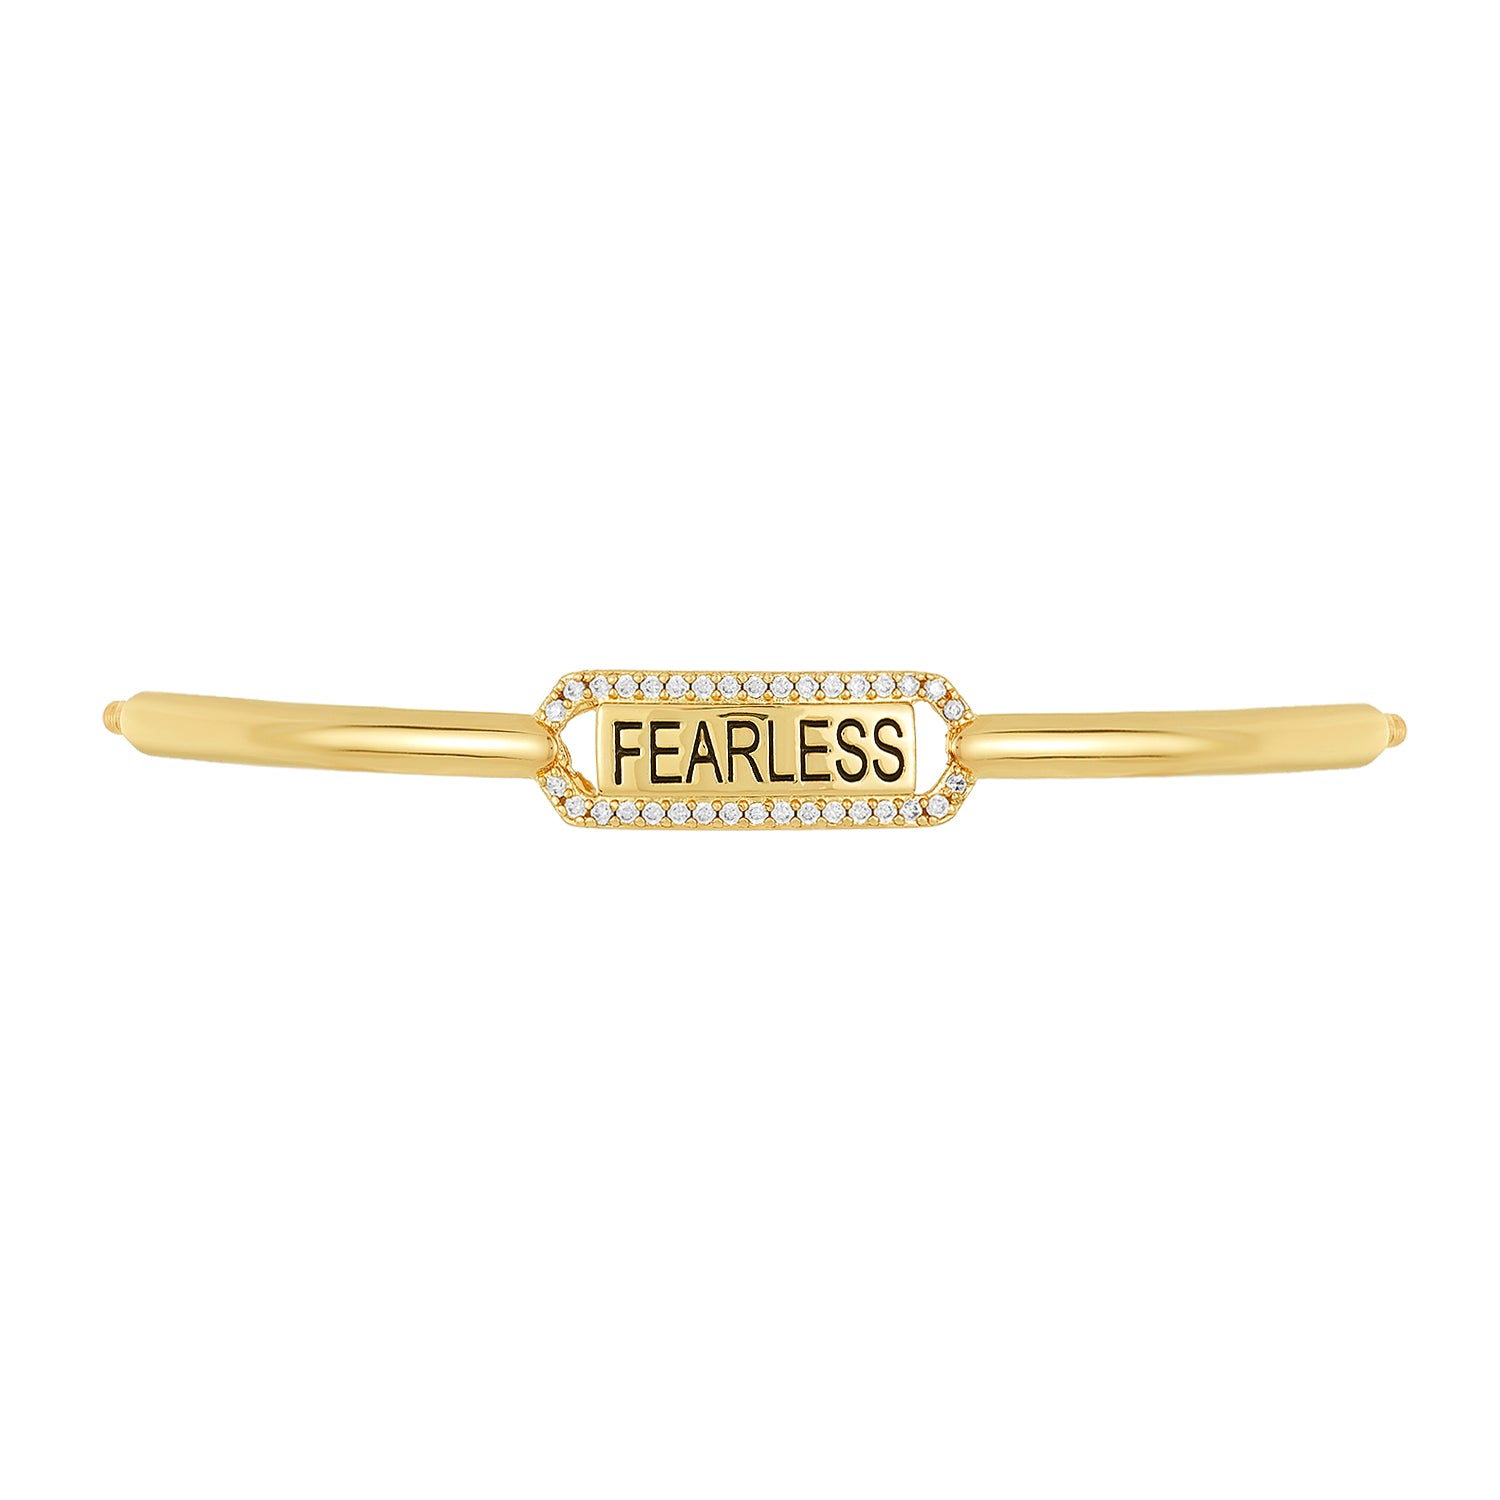 Golden Fearless Bracelet Bar, Large